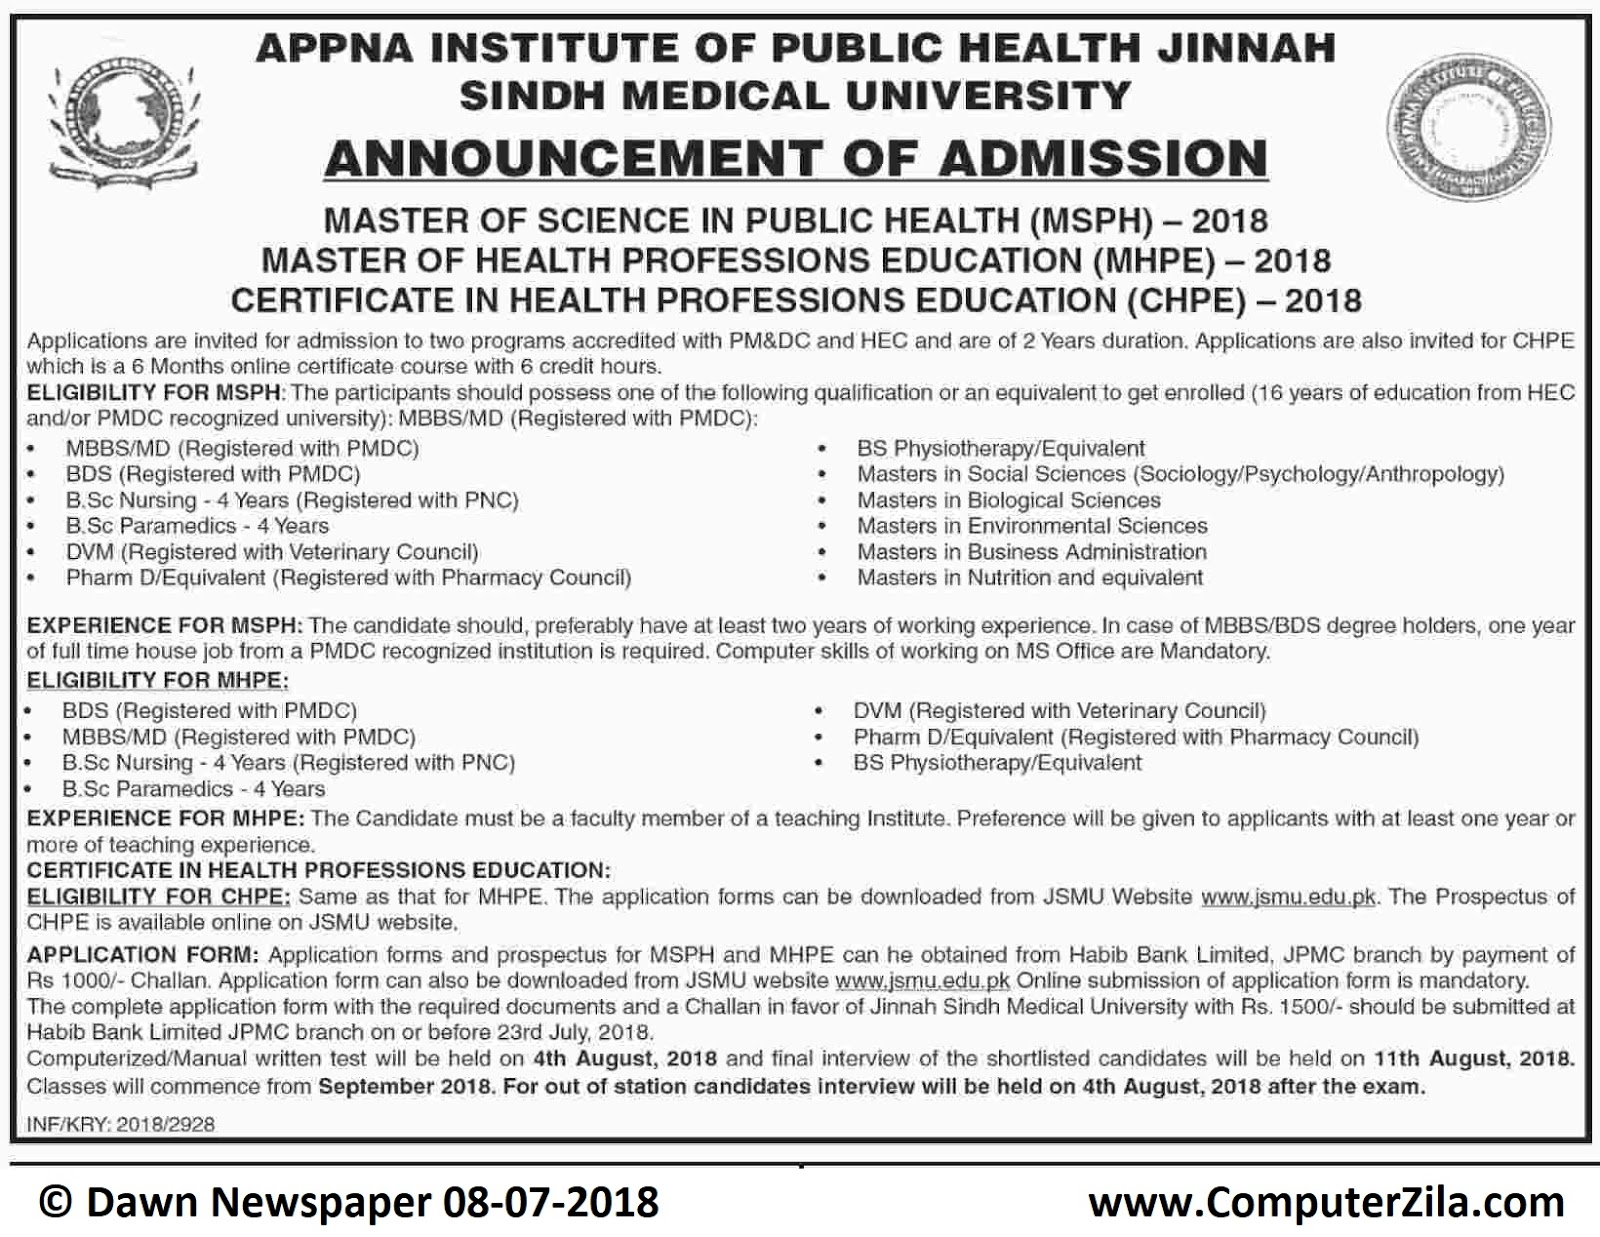 APPNA Institute of Public Health Jinnah Sindh Medical University Admissions Fall 2018